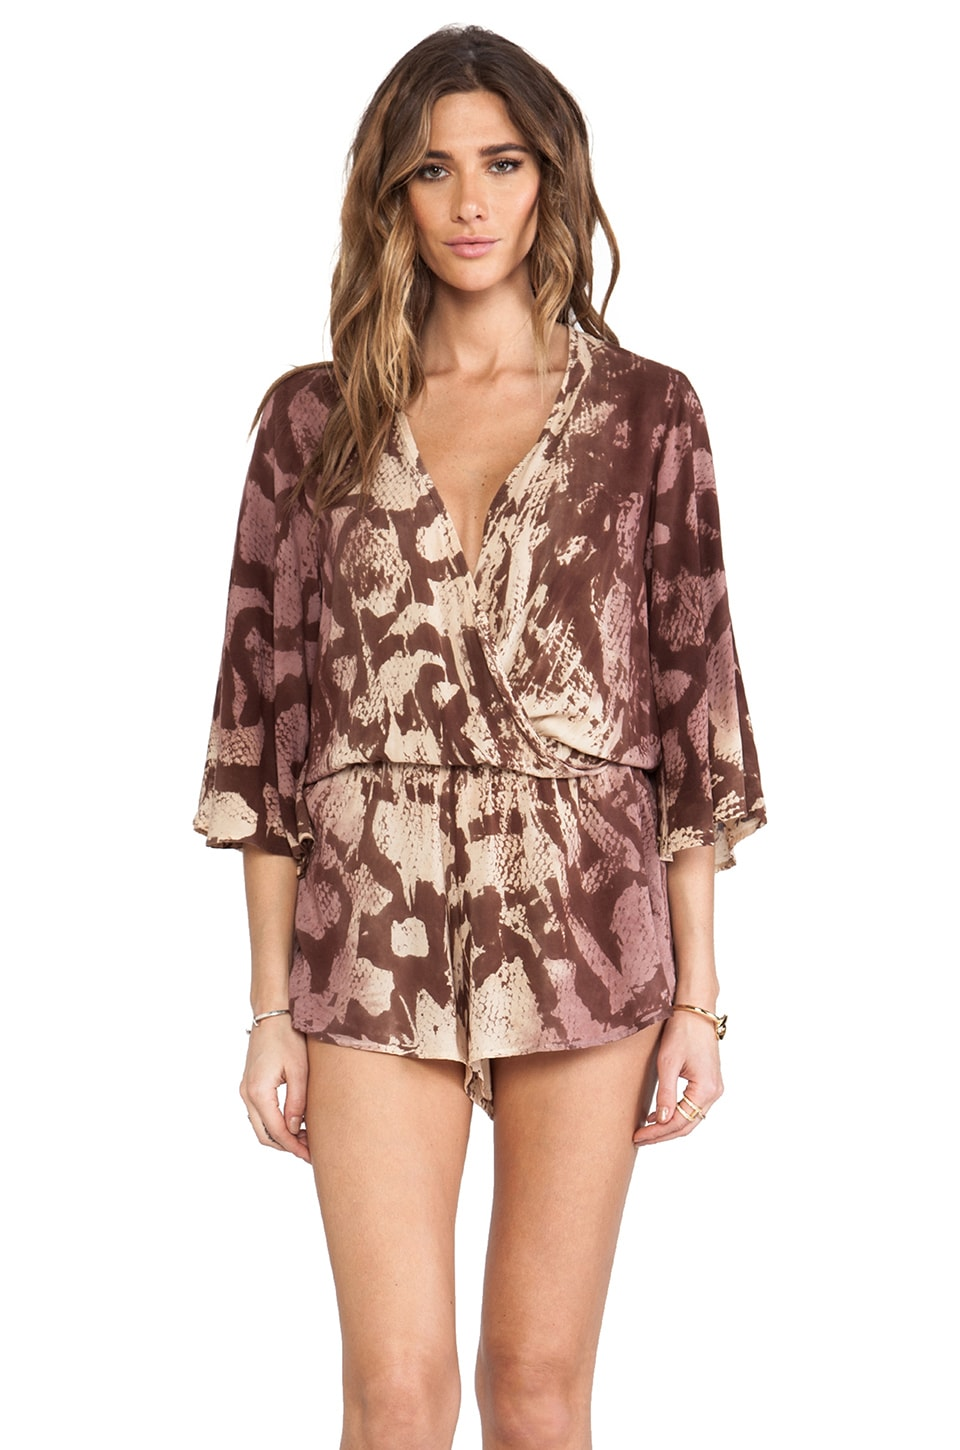 Blue Life Wild And Free Romper in Sand Snake